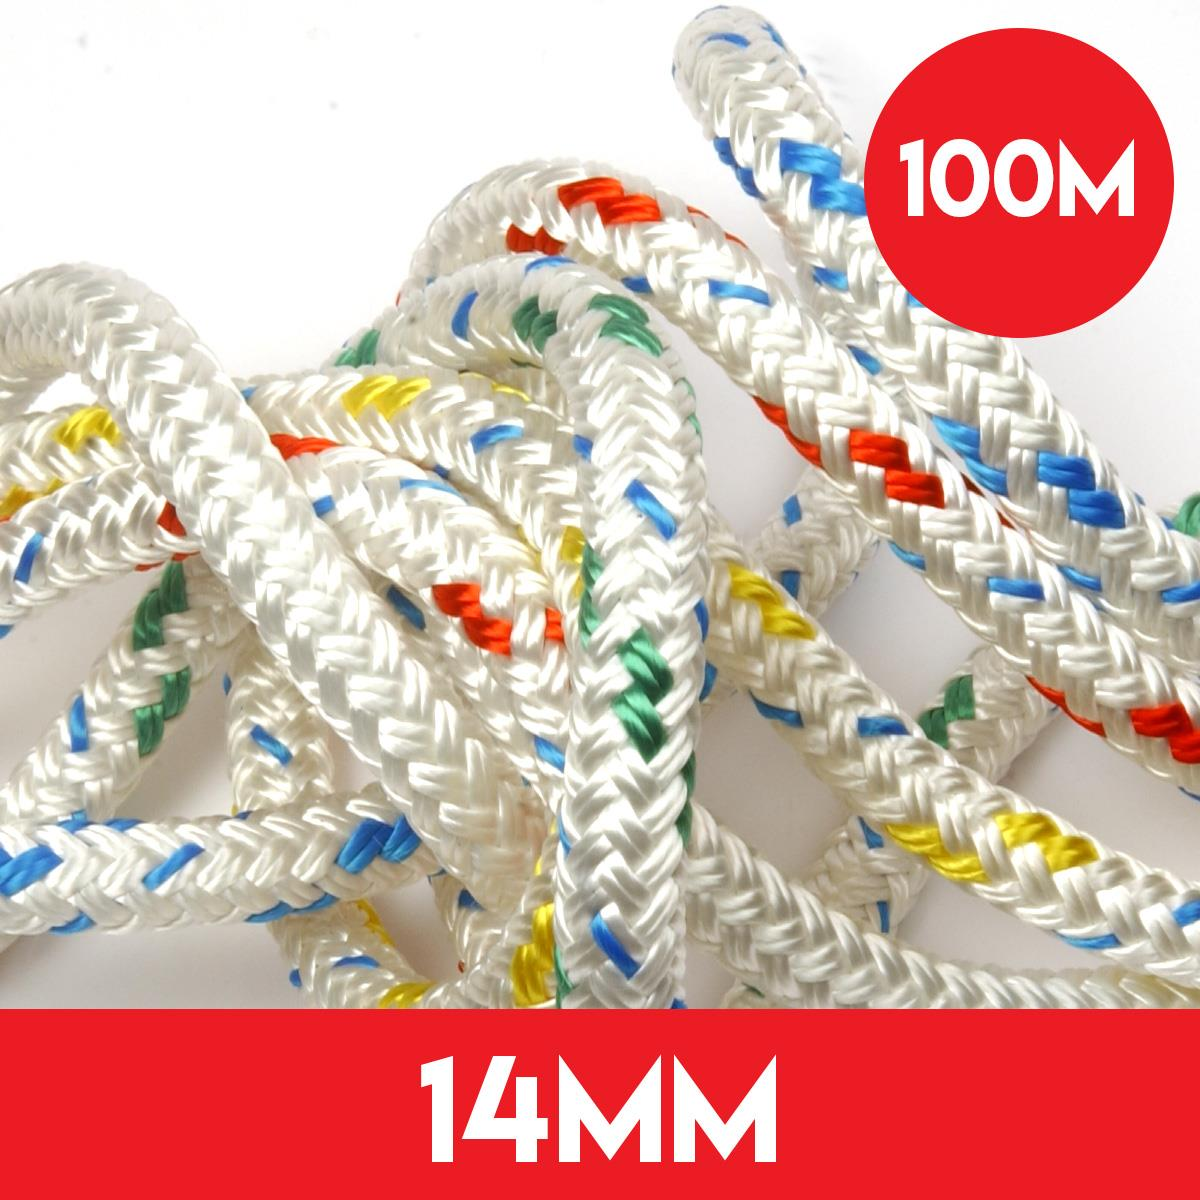 100m Reel of 14mm Polyester Braid on Braid Rope by Kingfisher